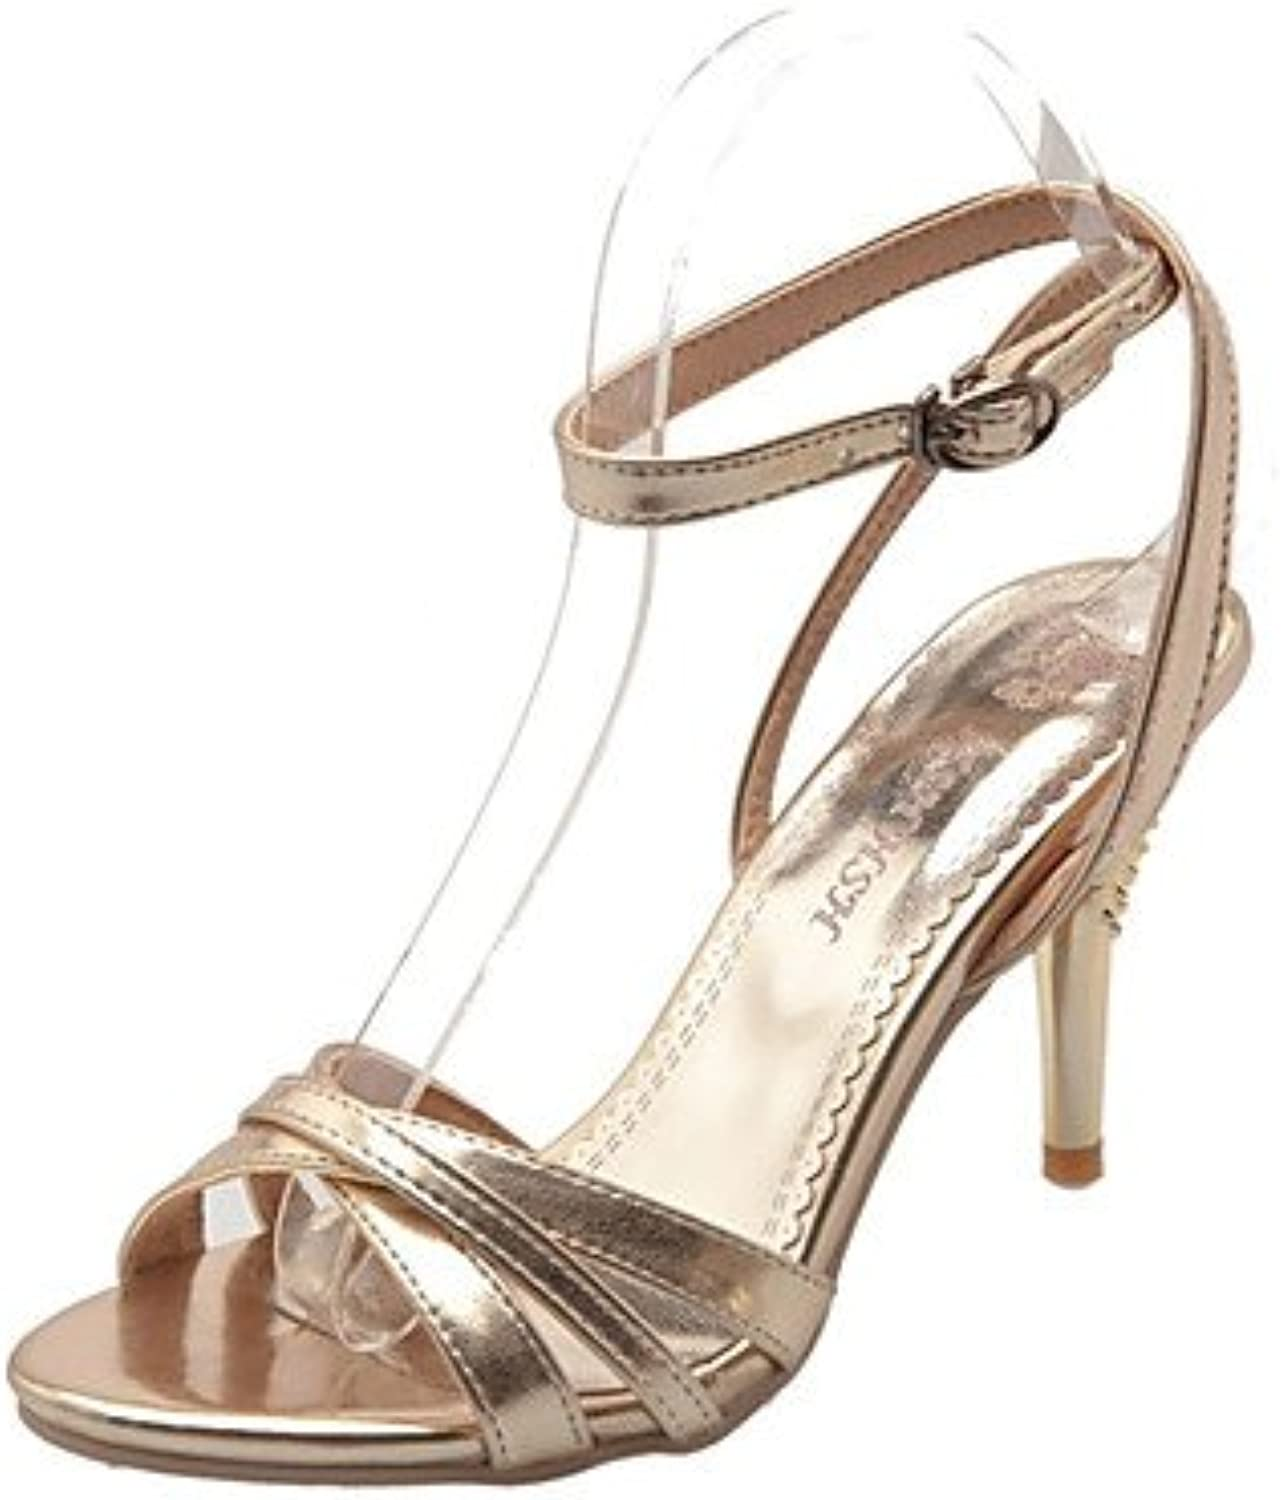 N.Y.L.A. Women's shoes Patent Leather Stiletto Heel Heels Styles Open Toe Sandals Office & Career Party & Evening Silver, golden, us8.5   eu39   uk6.5   cn40